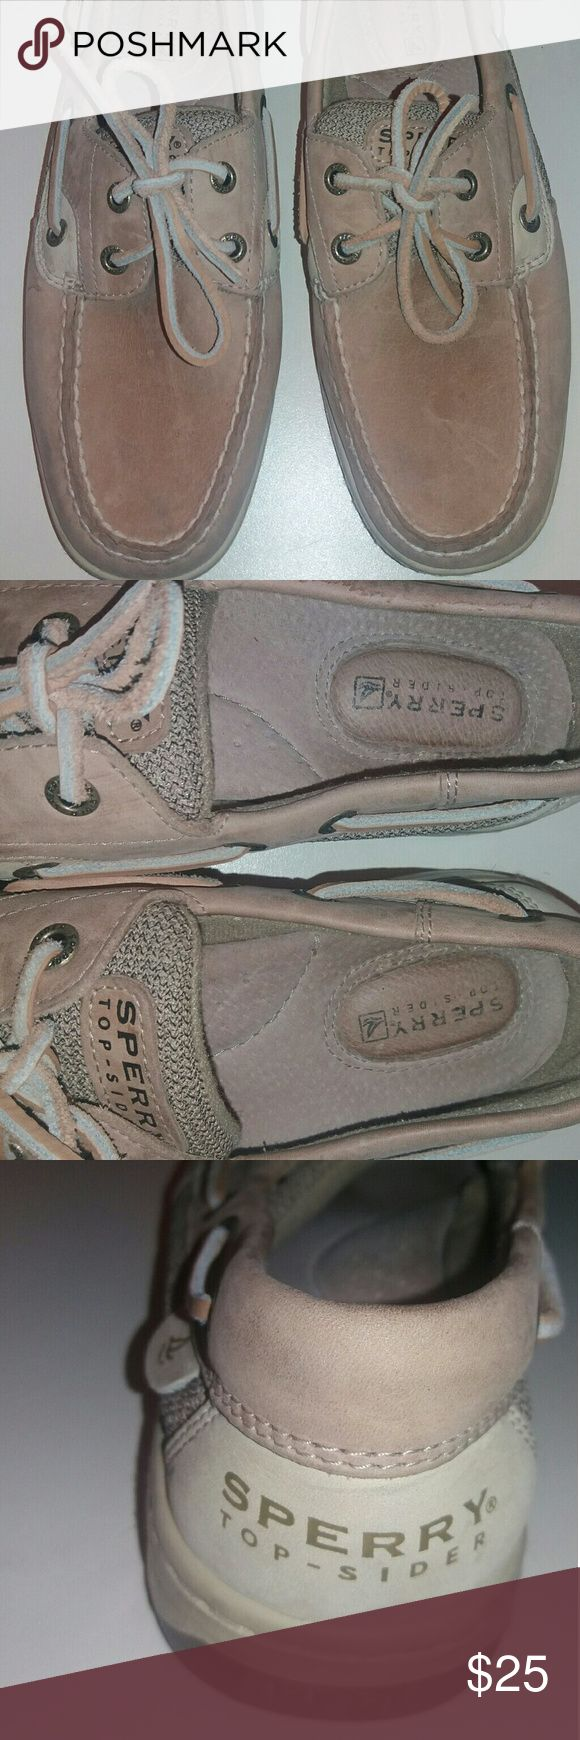 SPERRY TOP SIDER SHOES Sperry's top sider tan leather boat shoes (one time wear) Sperry Top-Sider Shoes Flats & Loafers